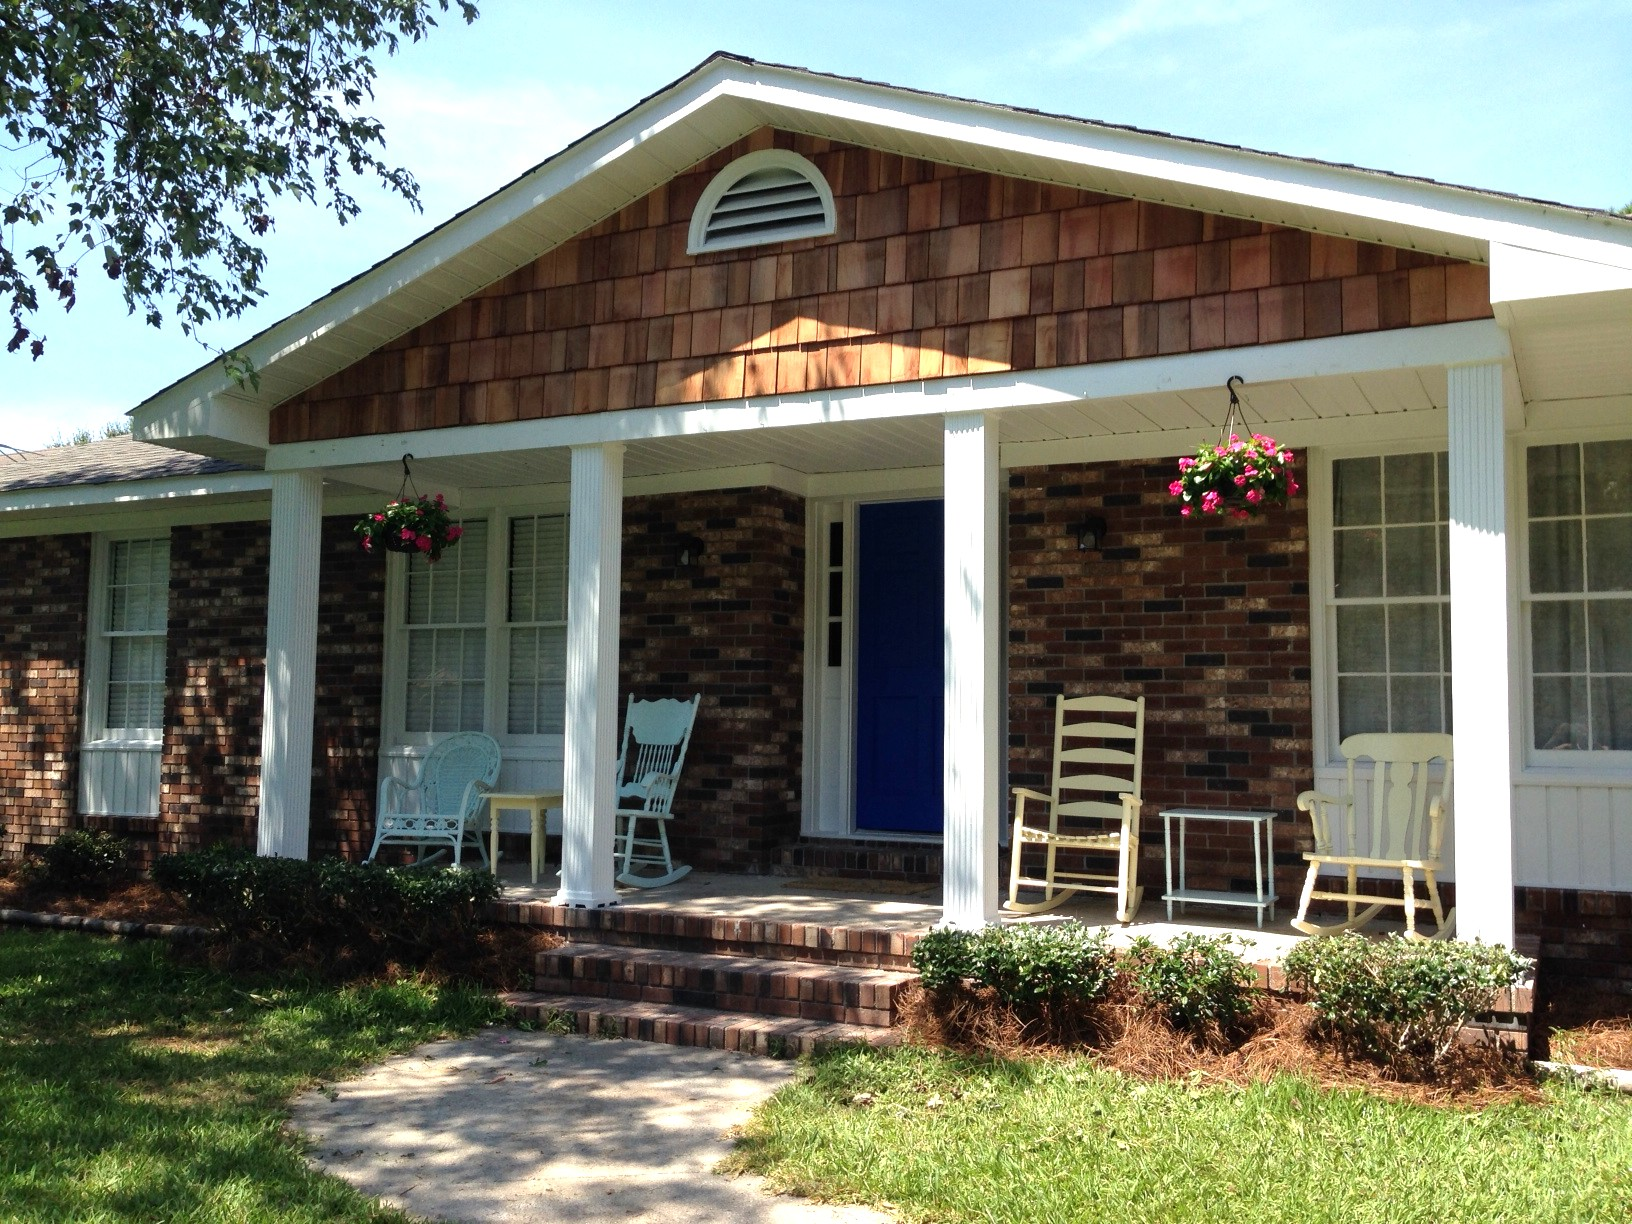 Info Balcony Ideas For Homes In Image Of Home Design With Plus 2017 Nice About Remodel in addition Kulbeth Farmhouse Porch New Orleans together with Funny farewell cards besides Backyard Brick Patio Design With Seating Wall And Fire Pit Plan No Also Outdoor Bench Inspirations Tangney Gardenwalk together with Rocking Chairs Plans Free Info. on porch rocking chairs